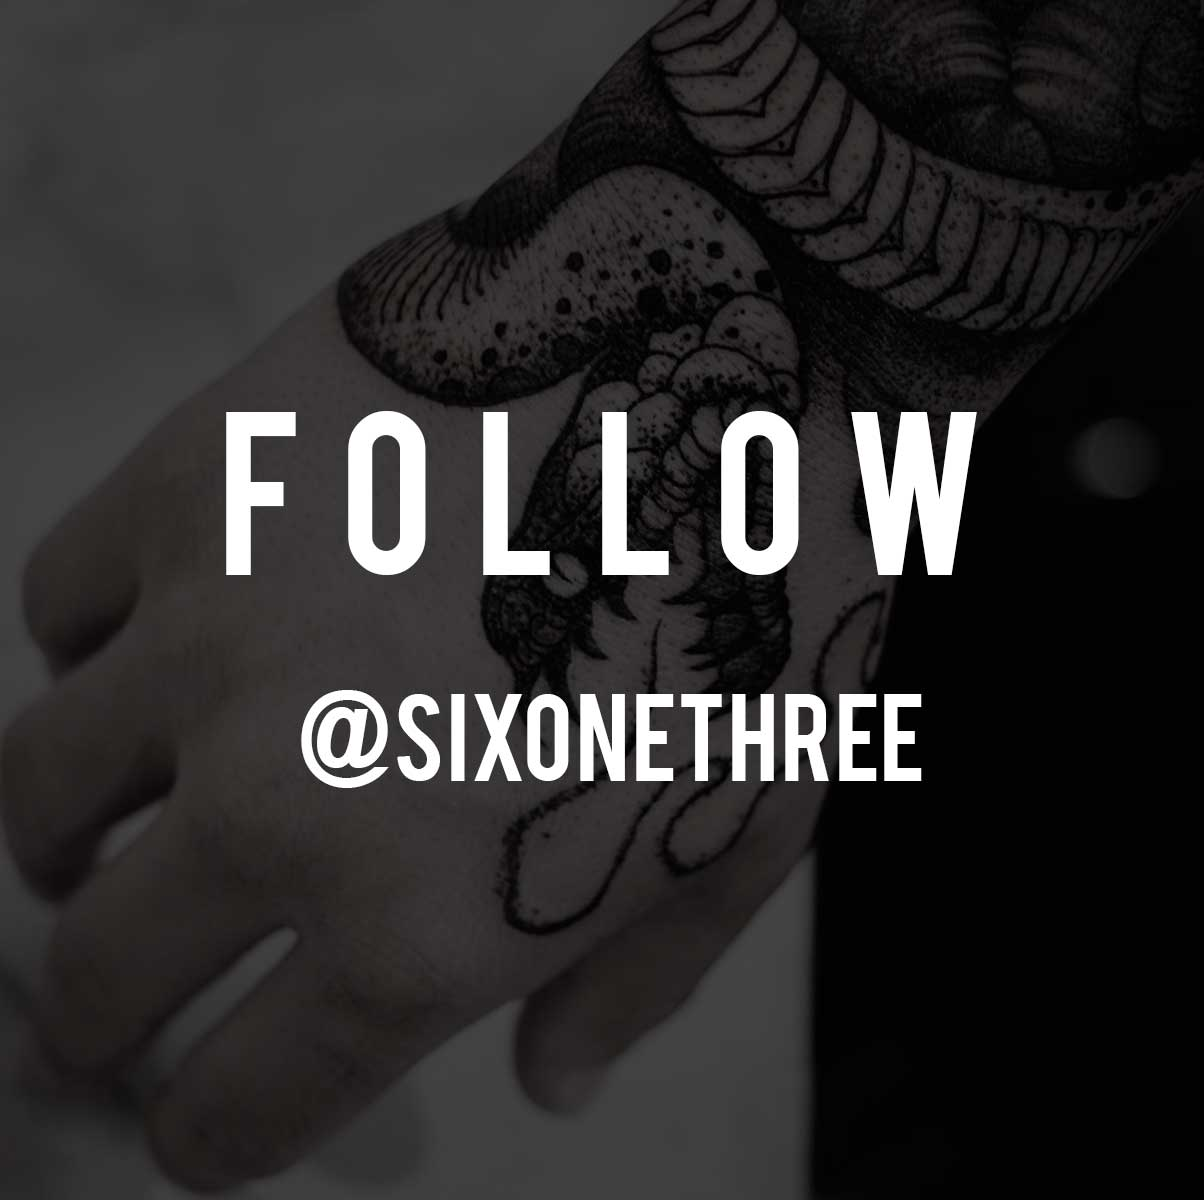 Follow - @sixonethree